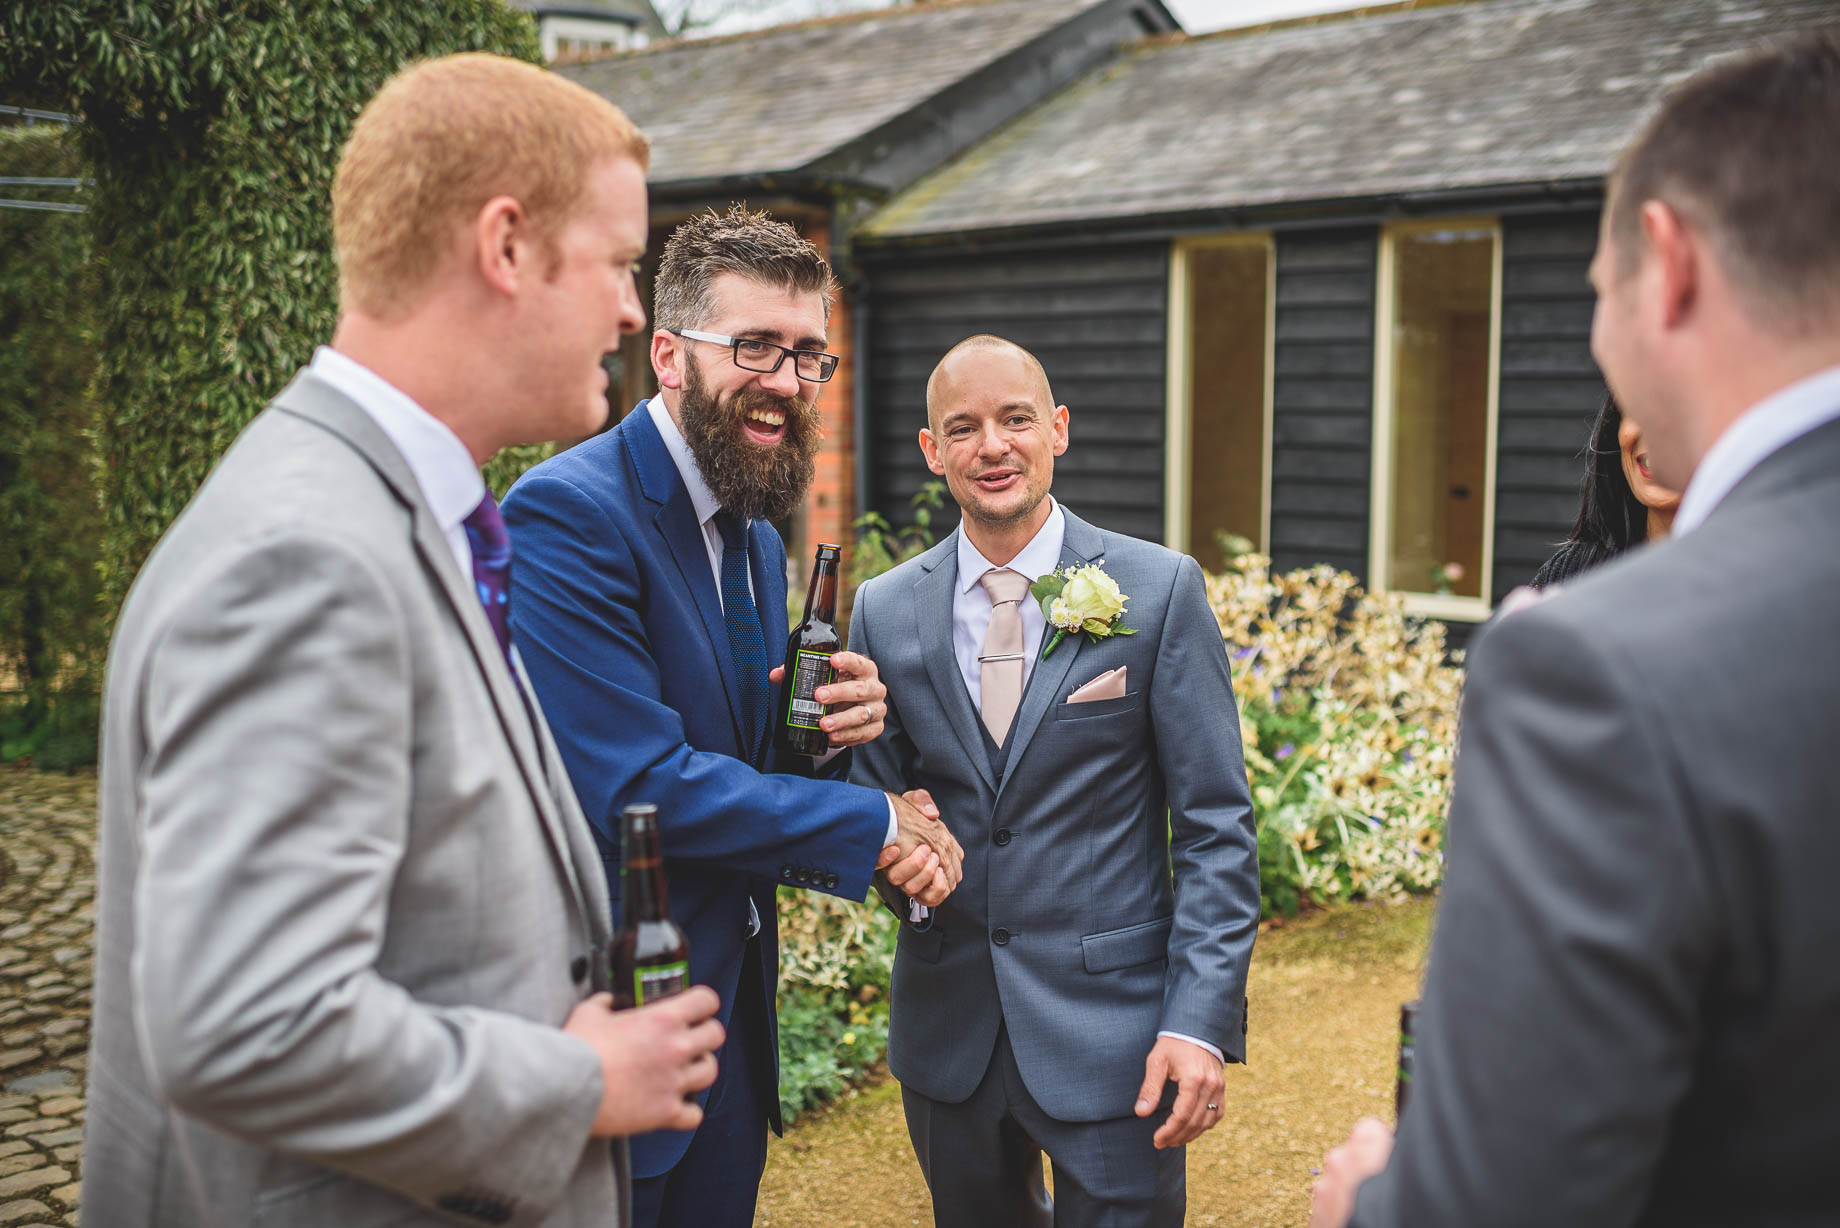 Bury Court Barn wedding photography - Guy Collier Photography - Karen and John (77 of 166)